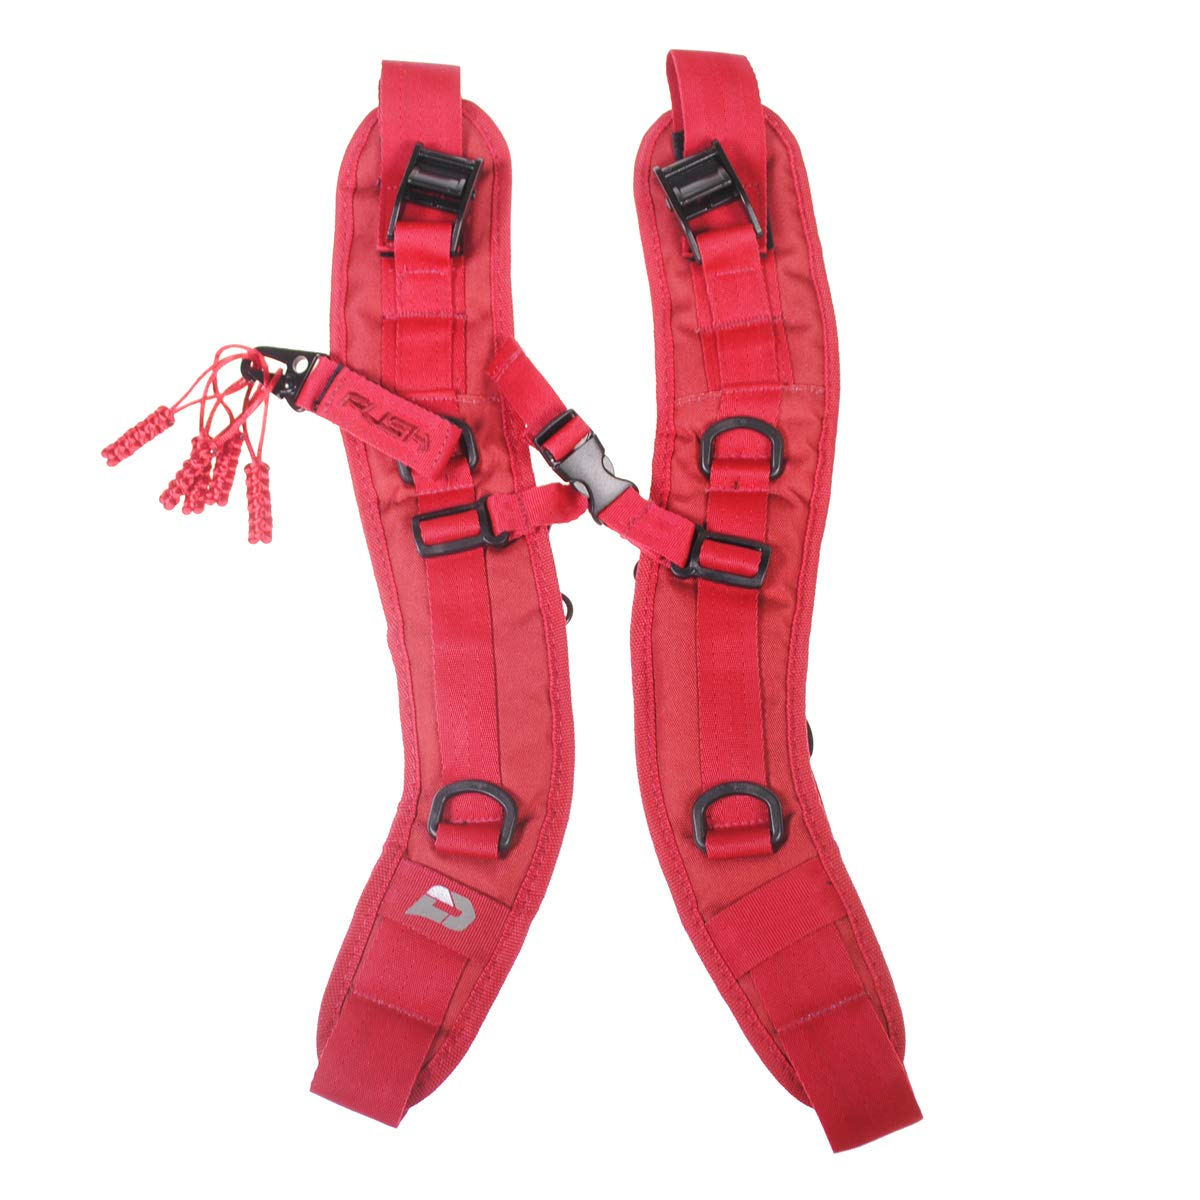 PUSH Paintball Backpack and Div1 Gear Bag Strap Kit (Red)